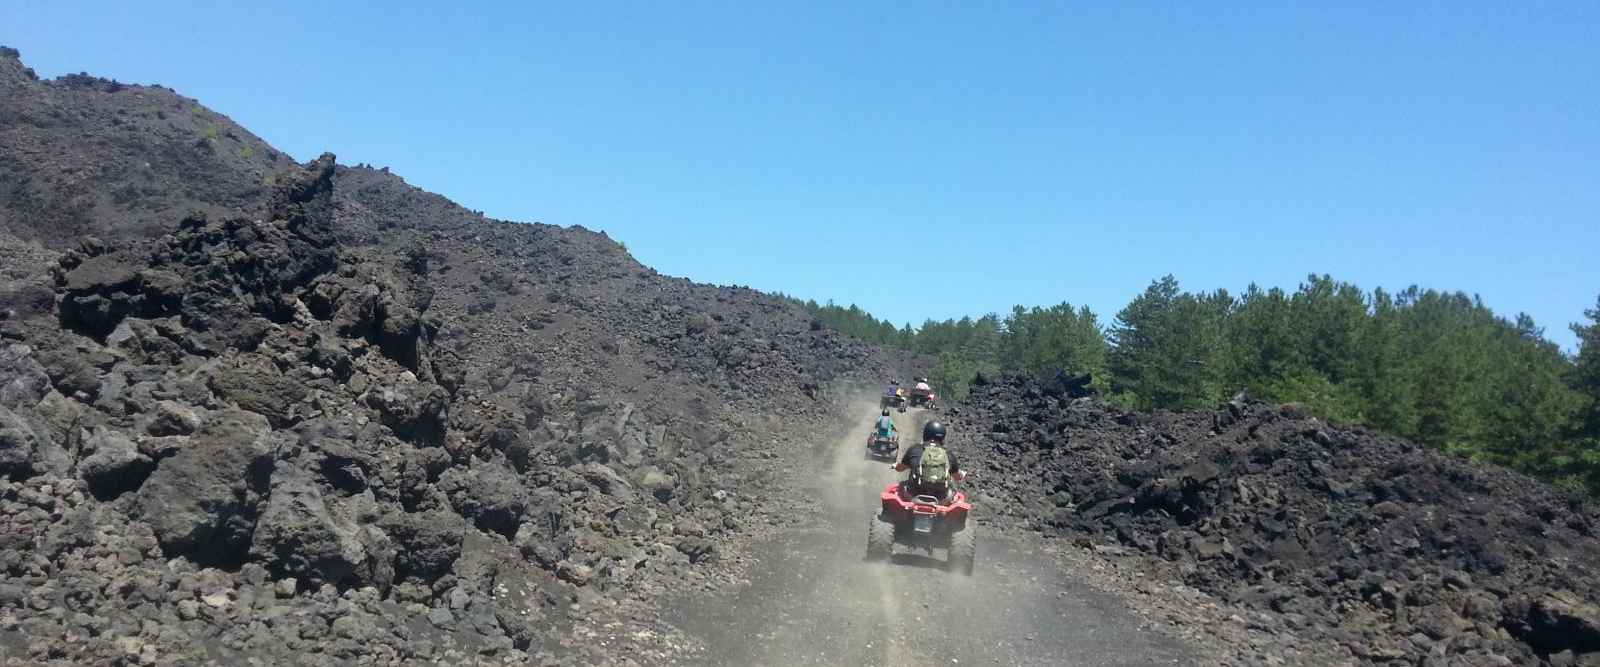 jeep-quad-experience-on-mt-etna-private